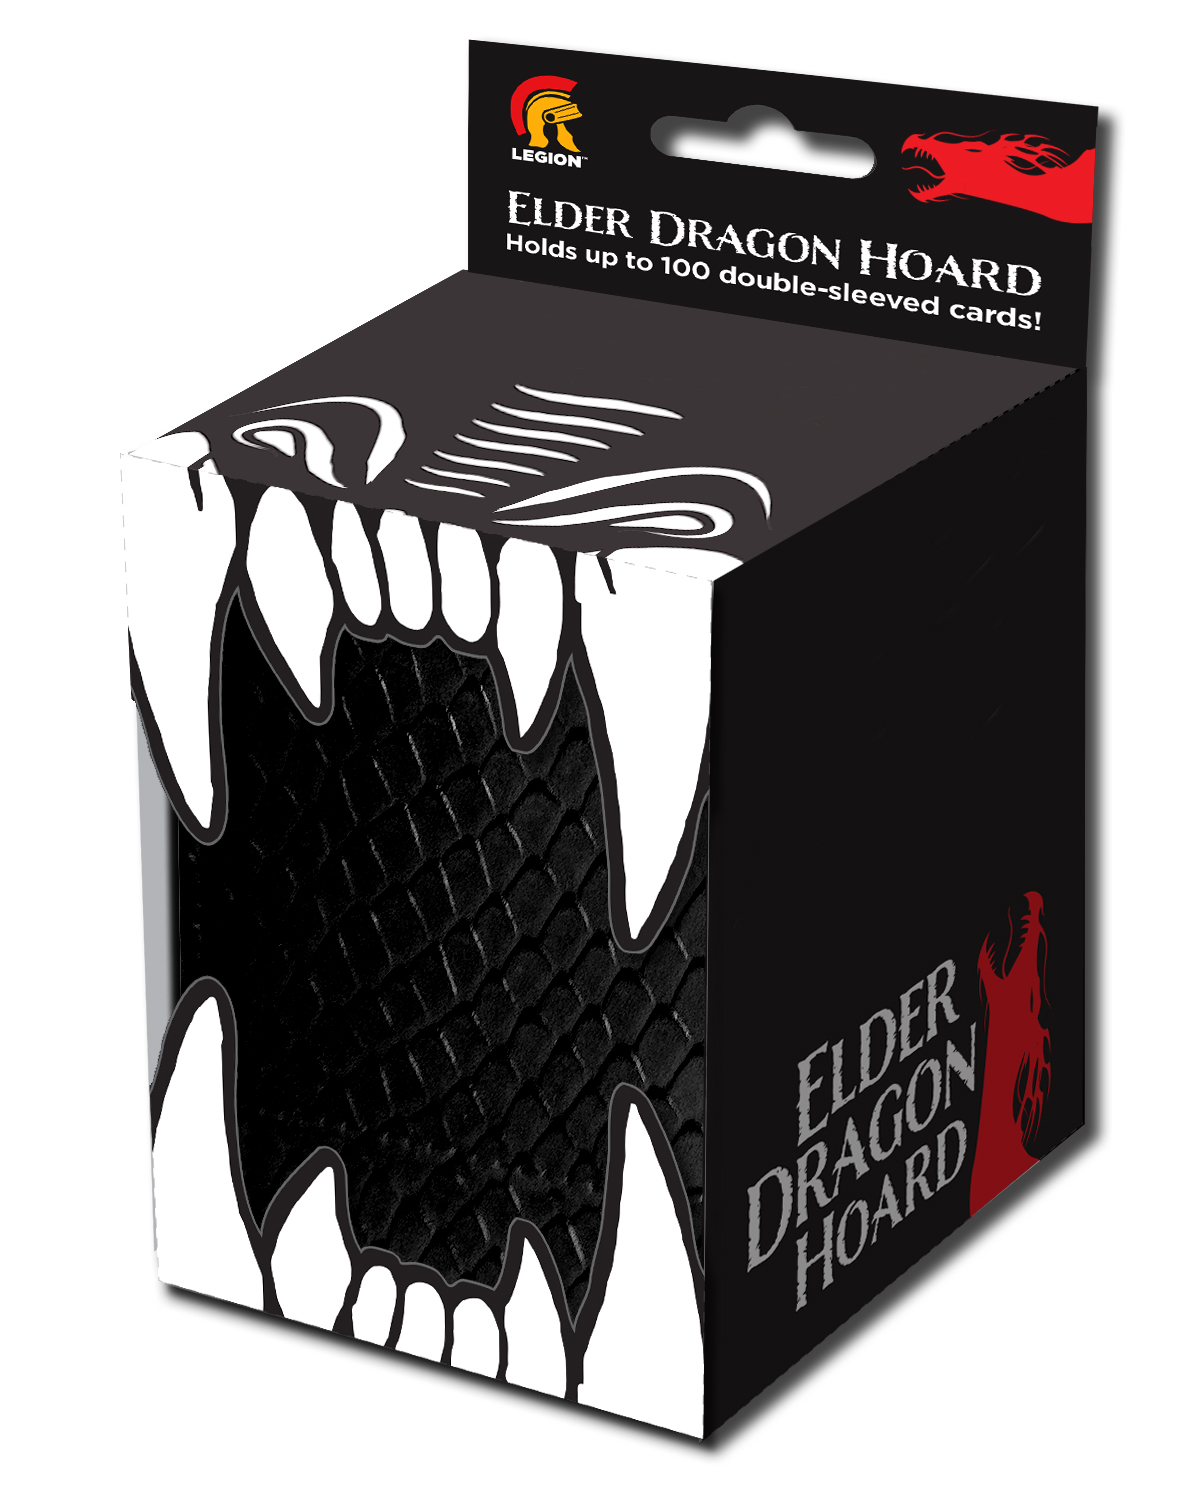 Hoard - Dragon Hide Black